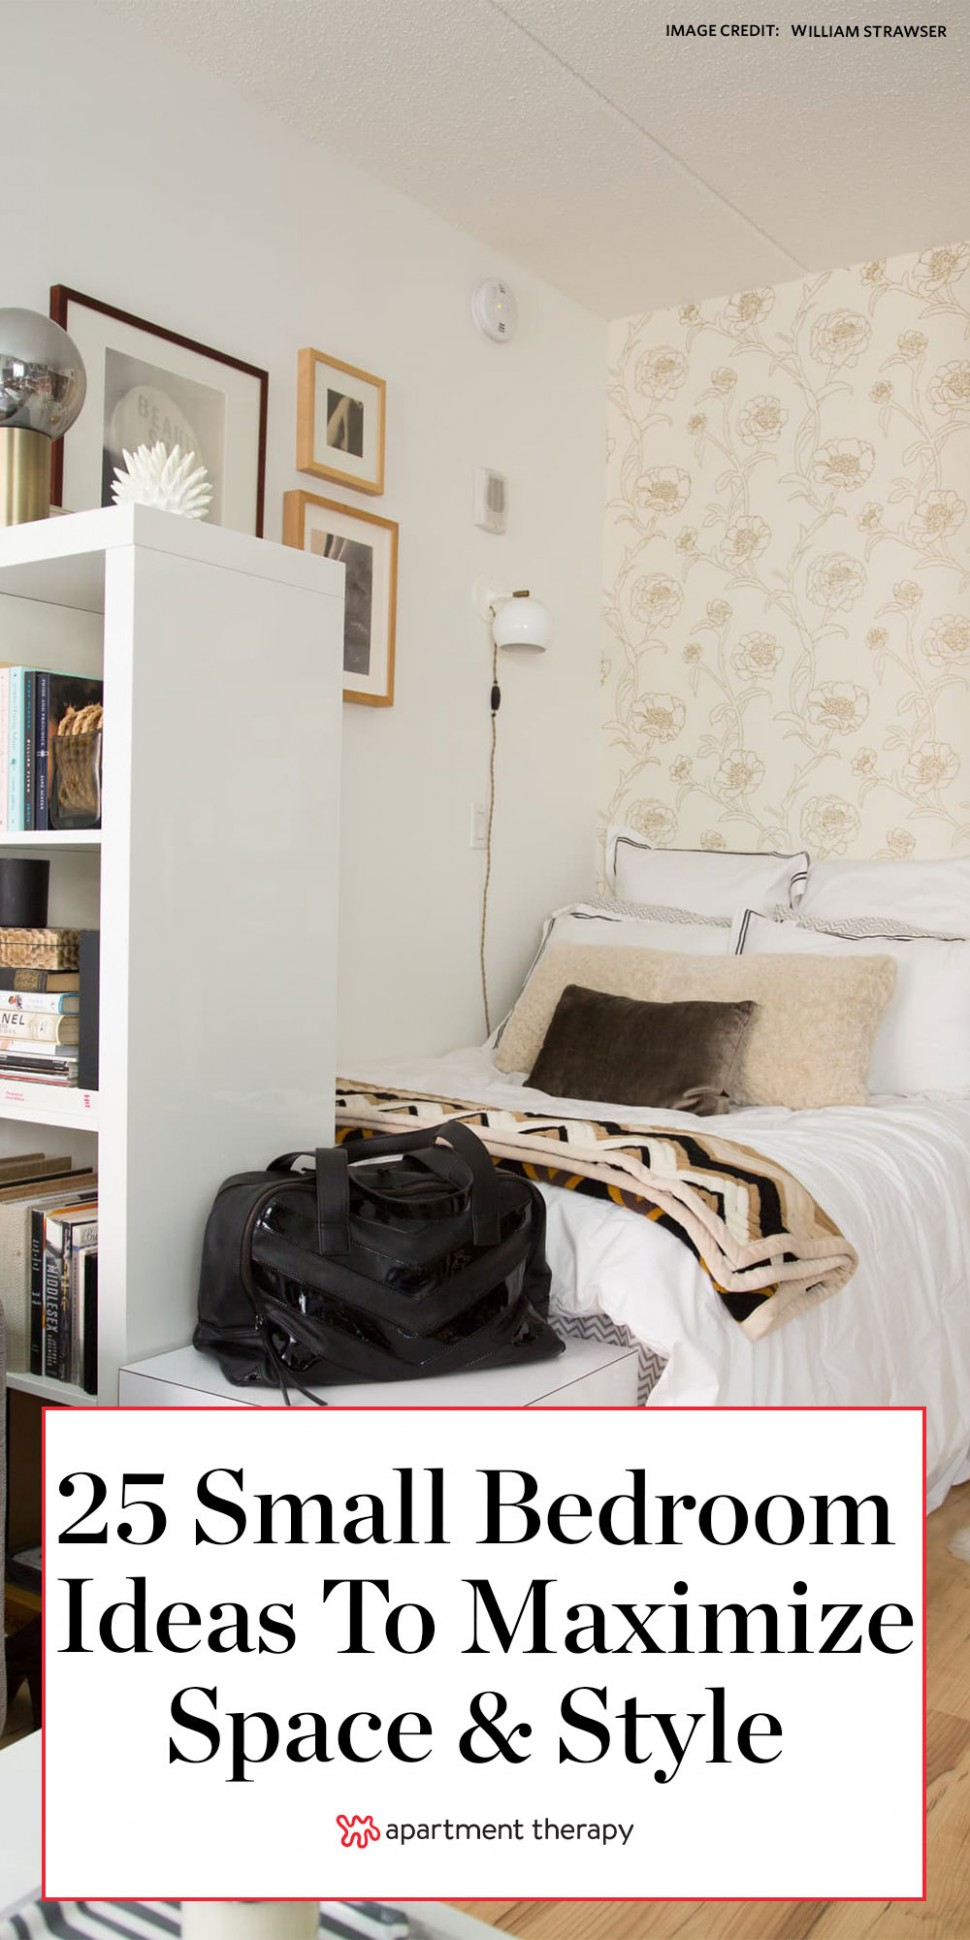 11 Small Bedroom Ideas - How to Decorate a Small Bedroom  - Bedroom Ideas Apartment